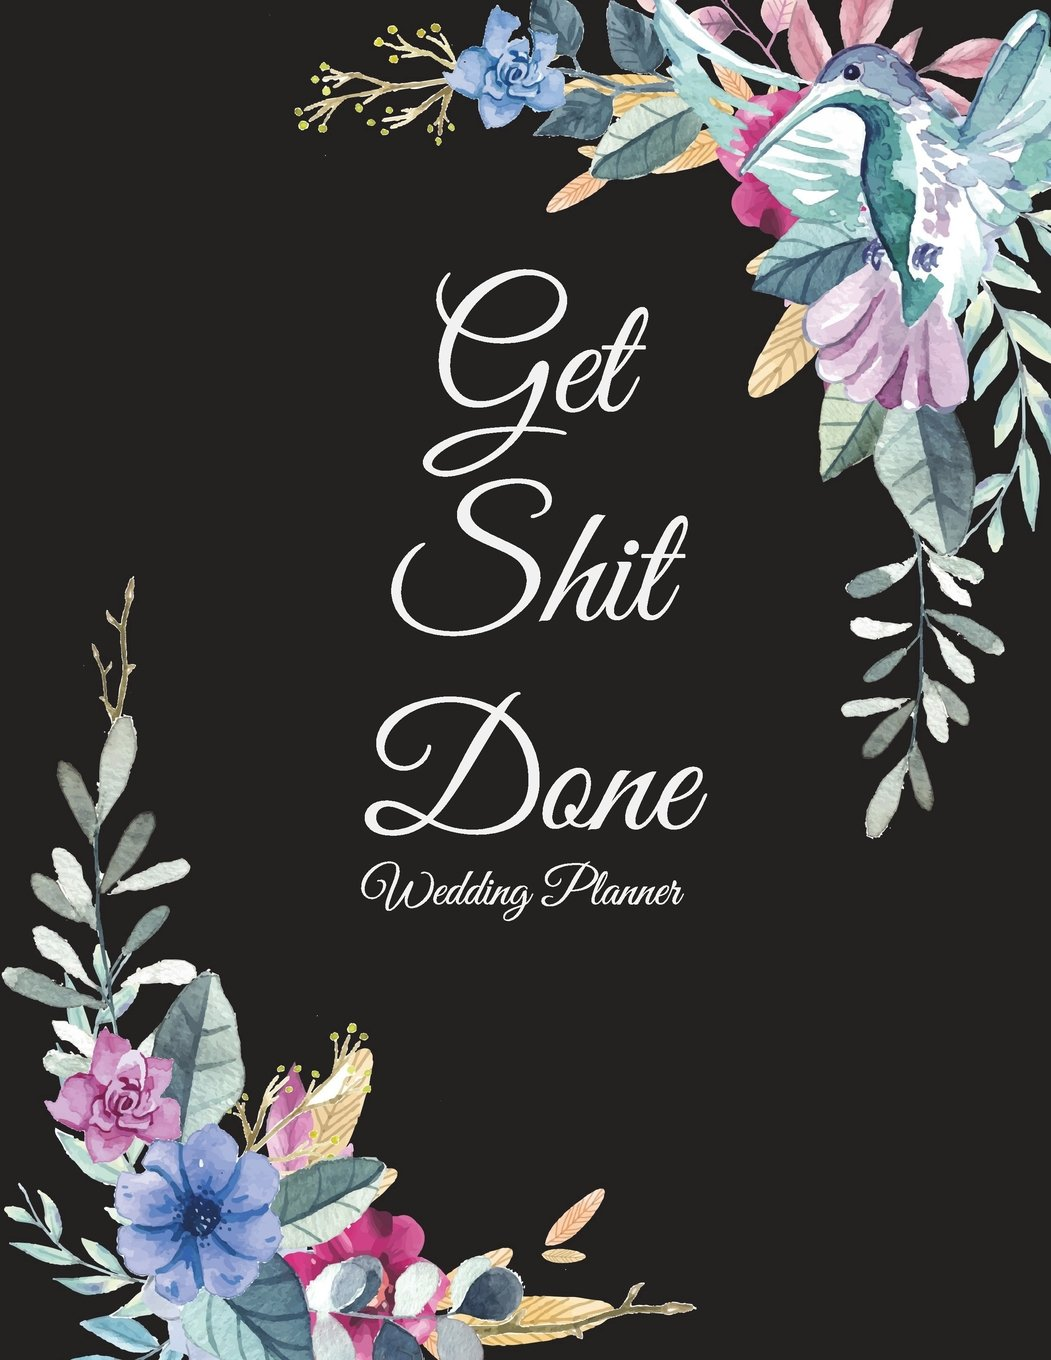 "Read Online Get Shit Done: Wedding Planner: Beauty Flowers, Wedding Log, Wedding Planning Notebook Large Print 8.5"" x 11"" Guest Book, Wedding Checklist, Perfect Wedding Gift pdf"